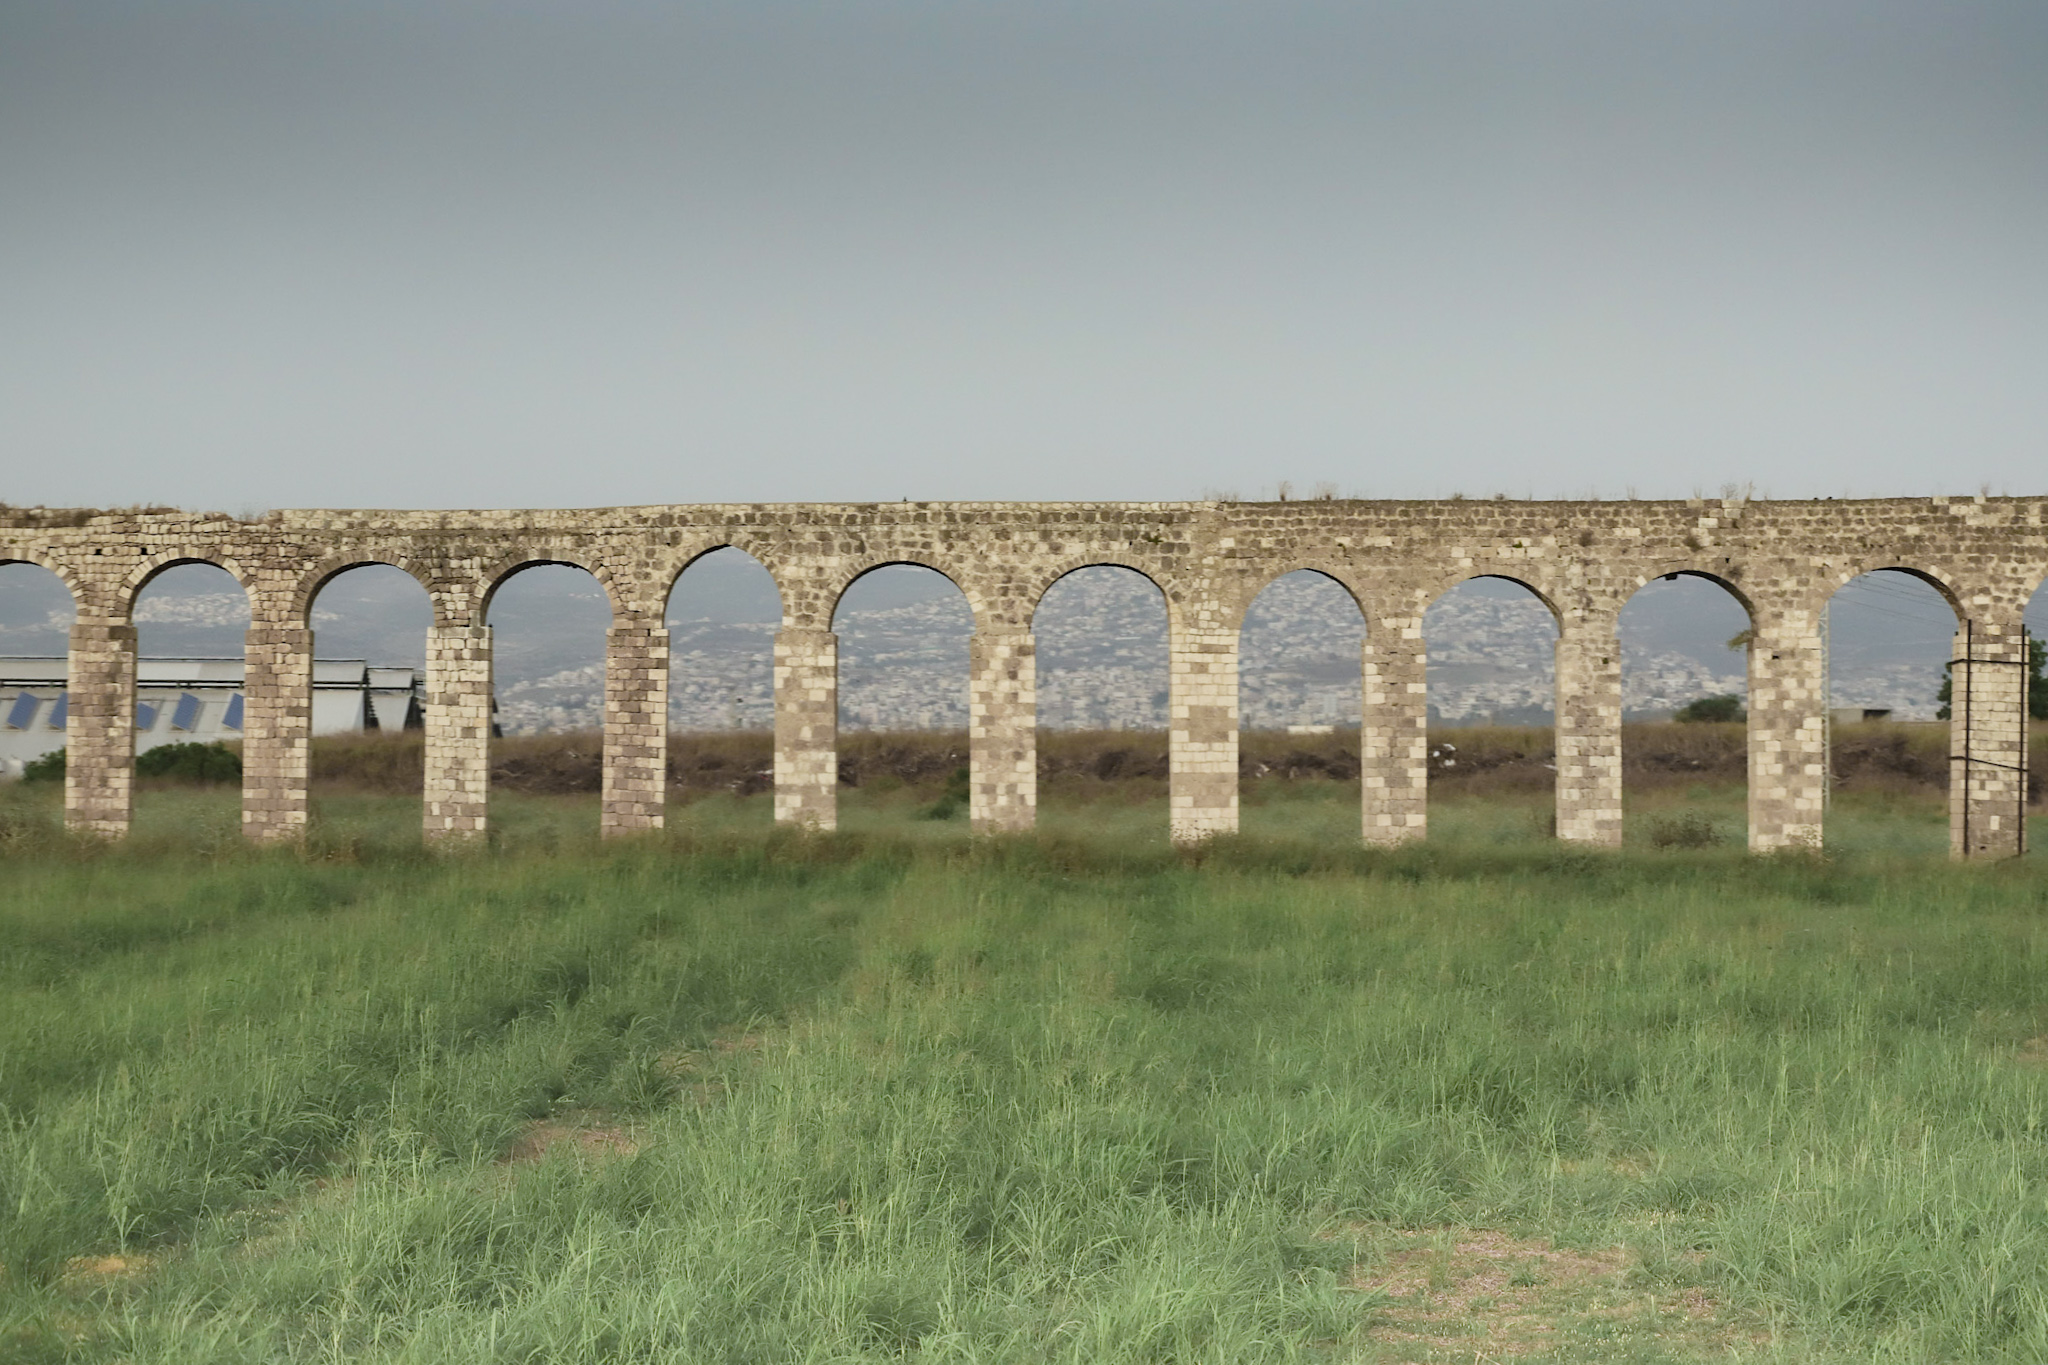 Remains of the ancient Roman aqueduct  in Israel